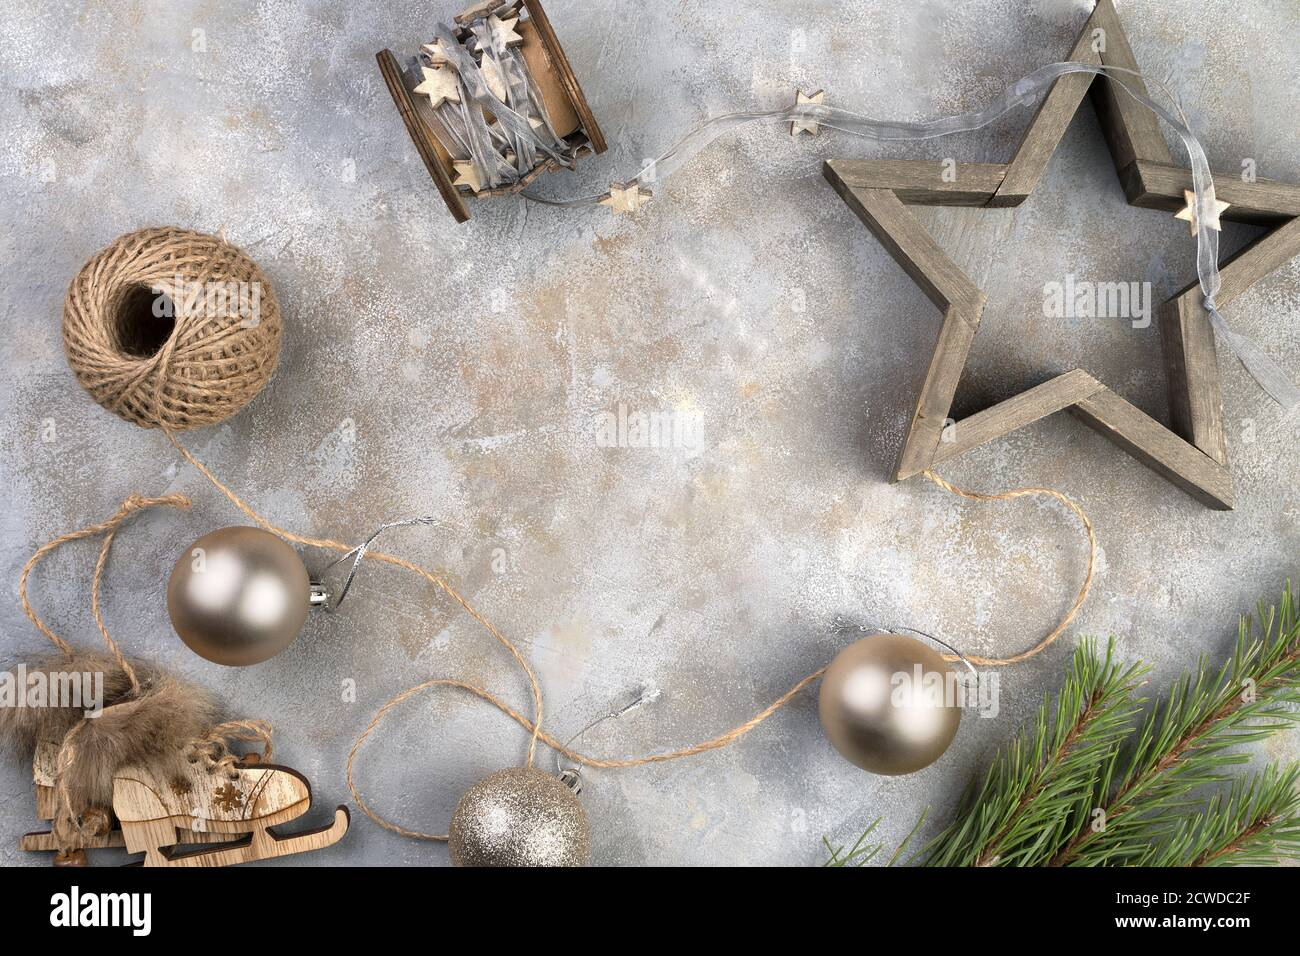 Merry Christmas 2021 Pictures Gray Merry Christmas And New Year 2021 Background With Holiday Toys Skates Star On A Gray Background Stock Photo Alamy